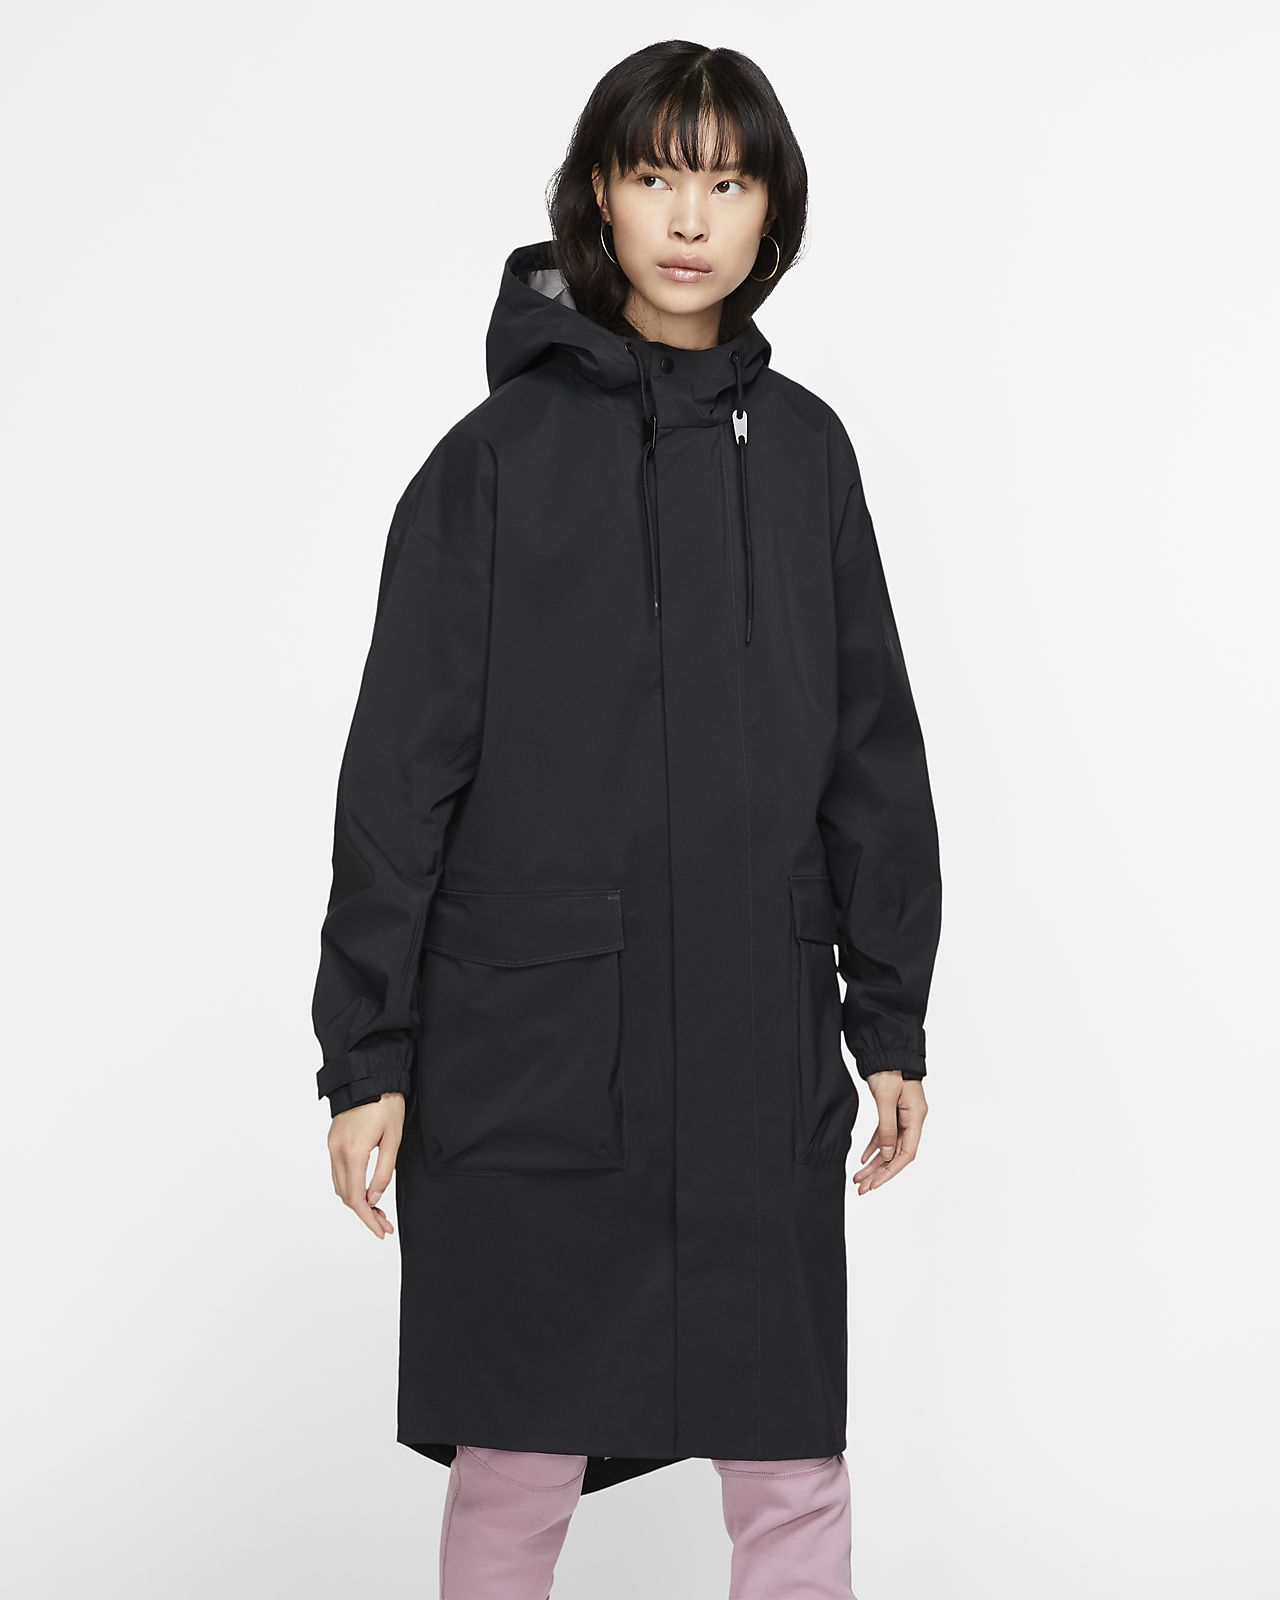 NikeLab Collection 女款大衣